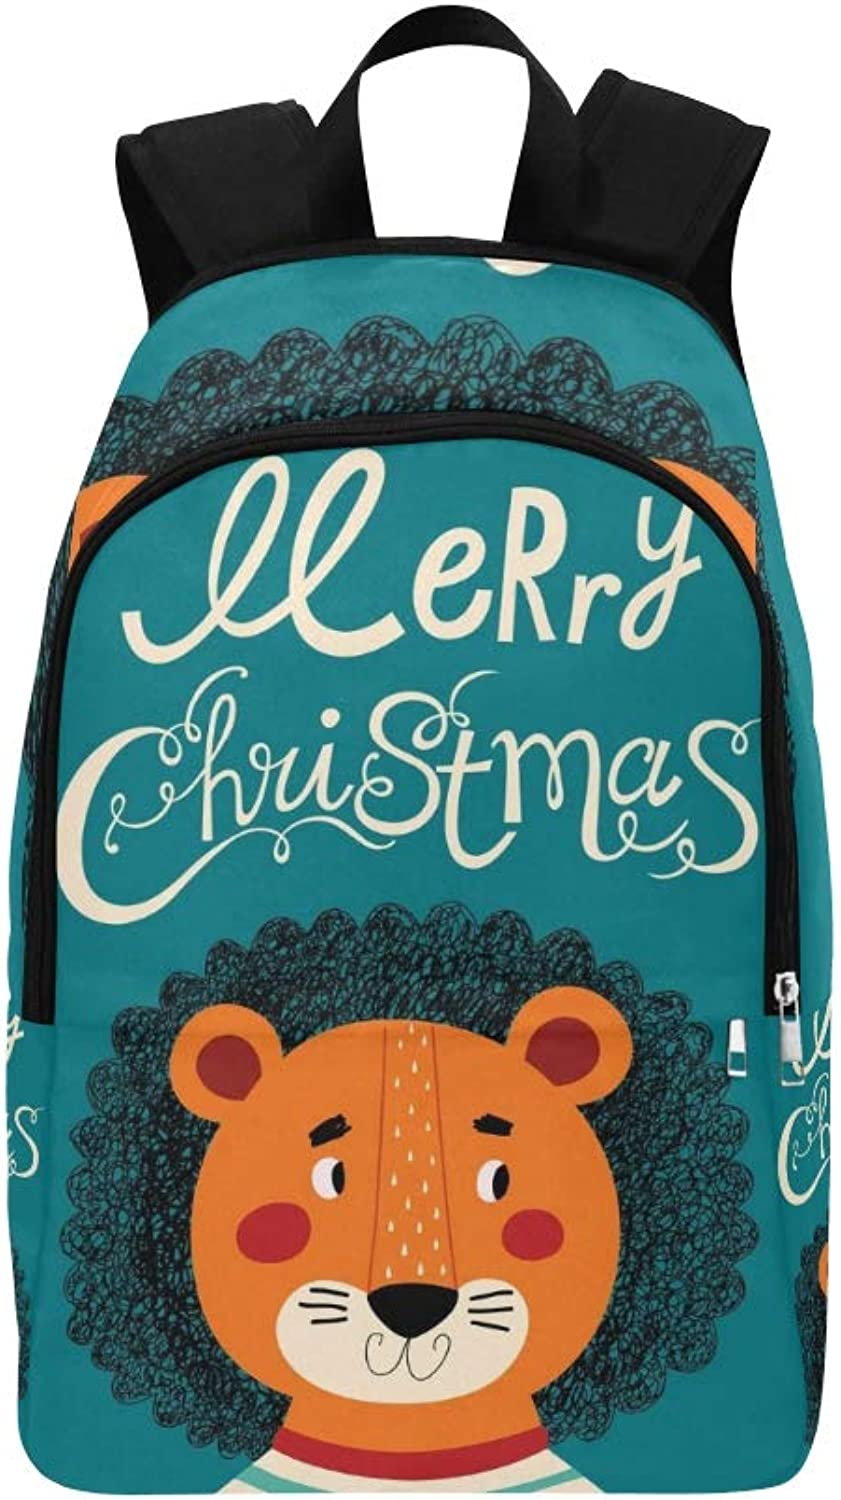 Christmas Lion Casual Daypack Travel Bag College School Backpack for Mens and Women